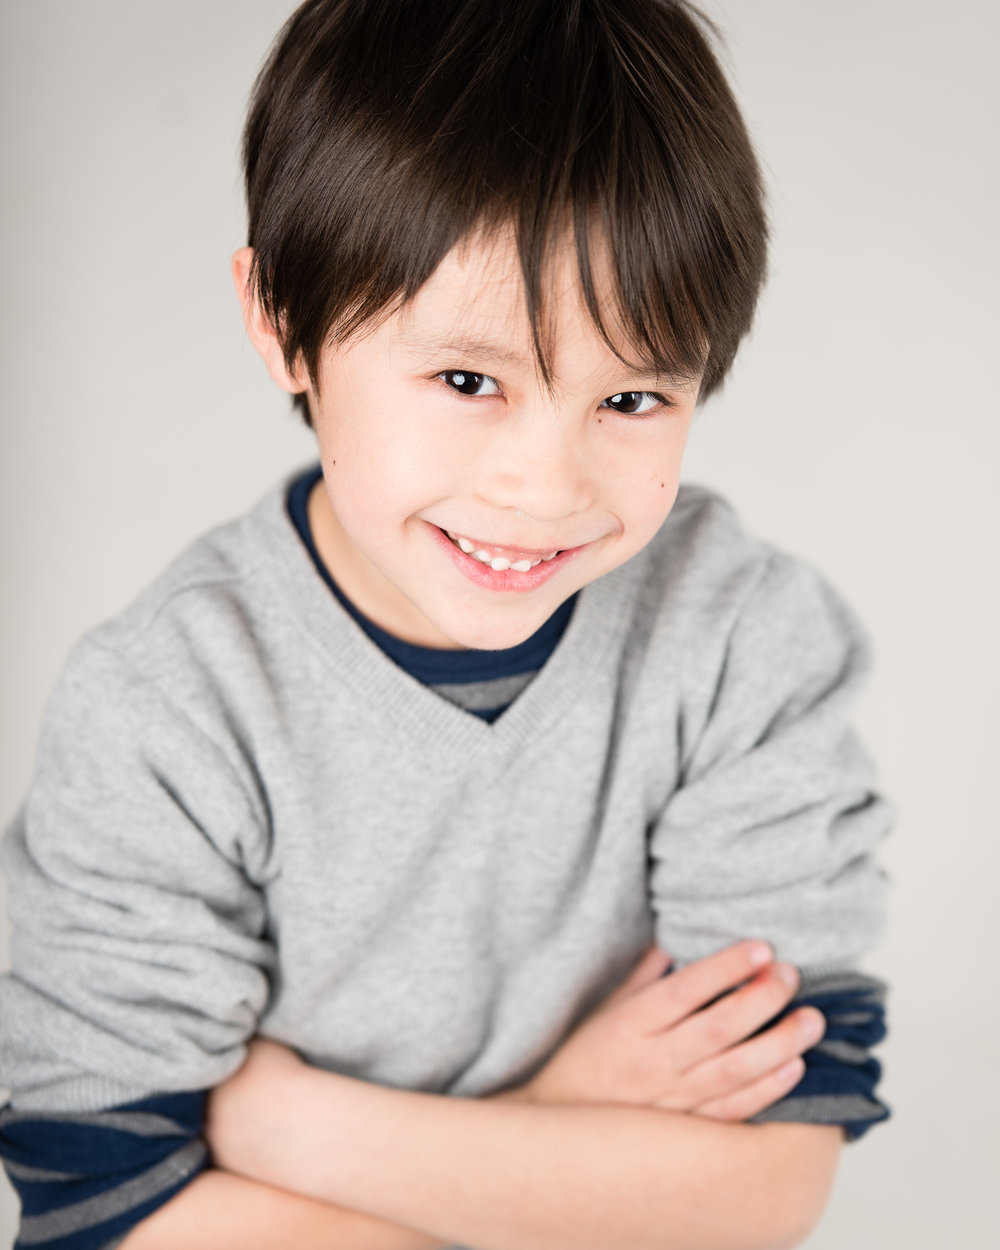 ChildrenHeadshots012.jpg